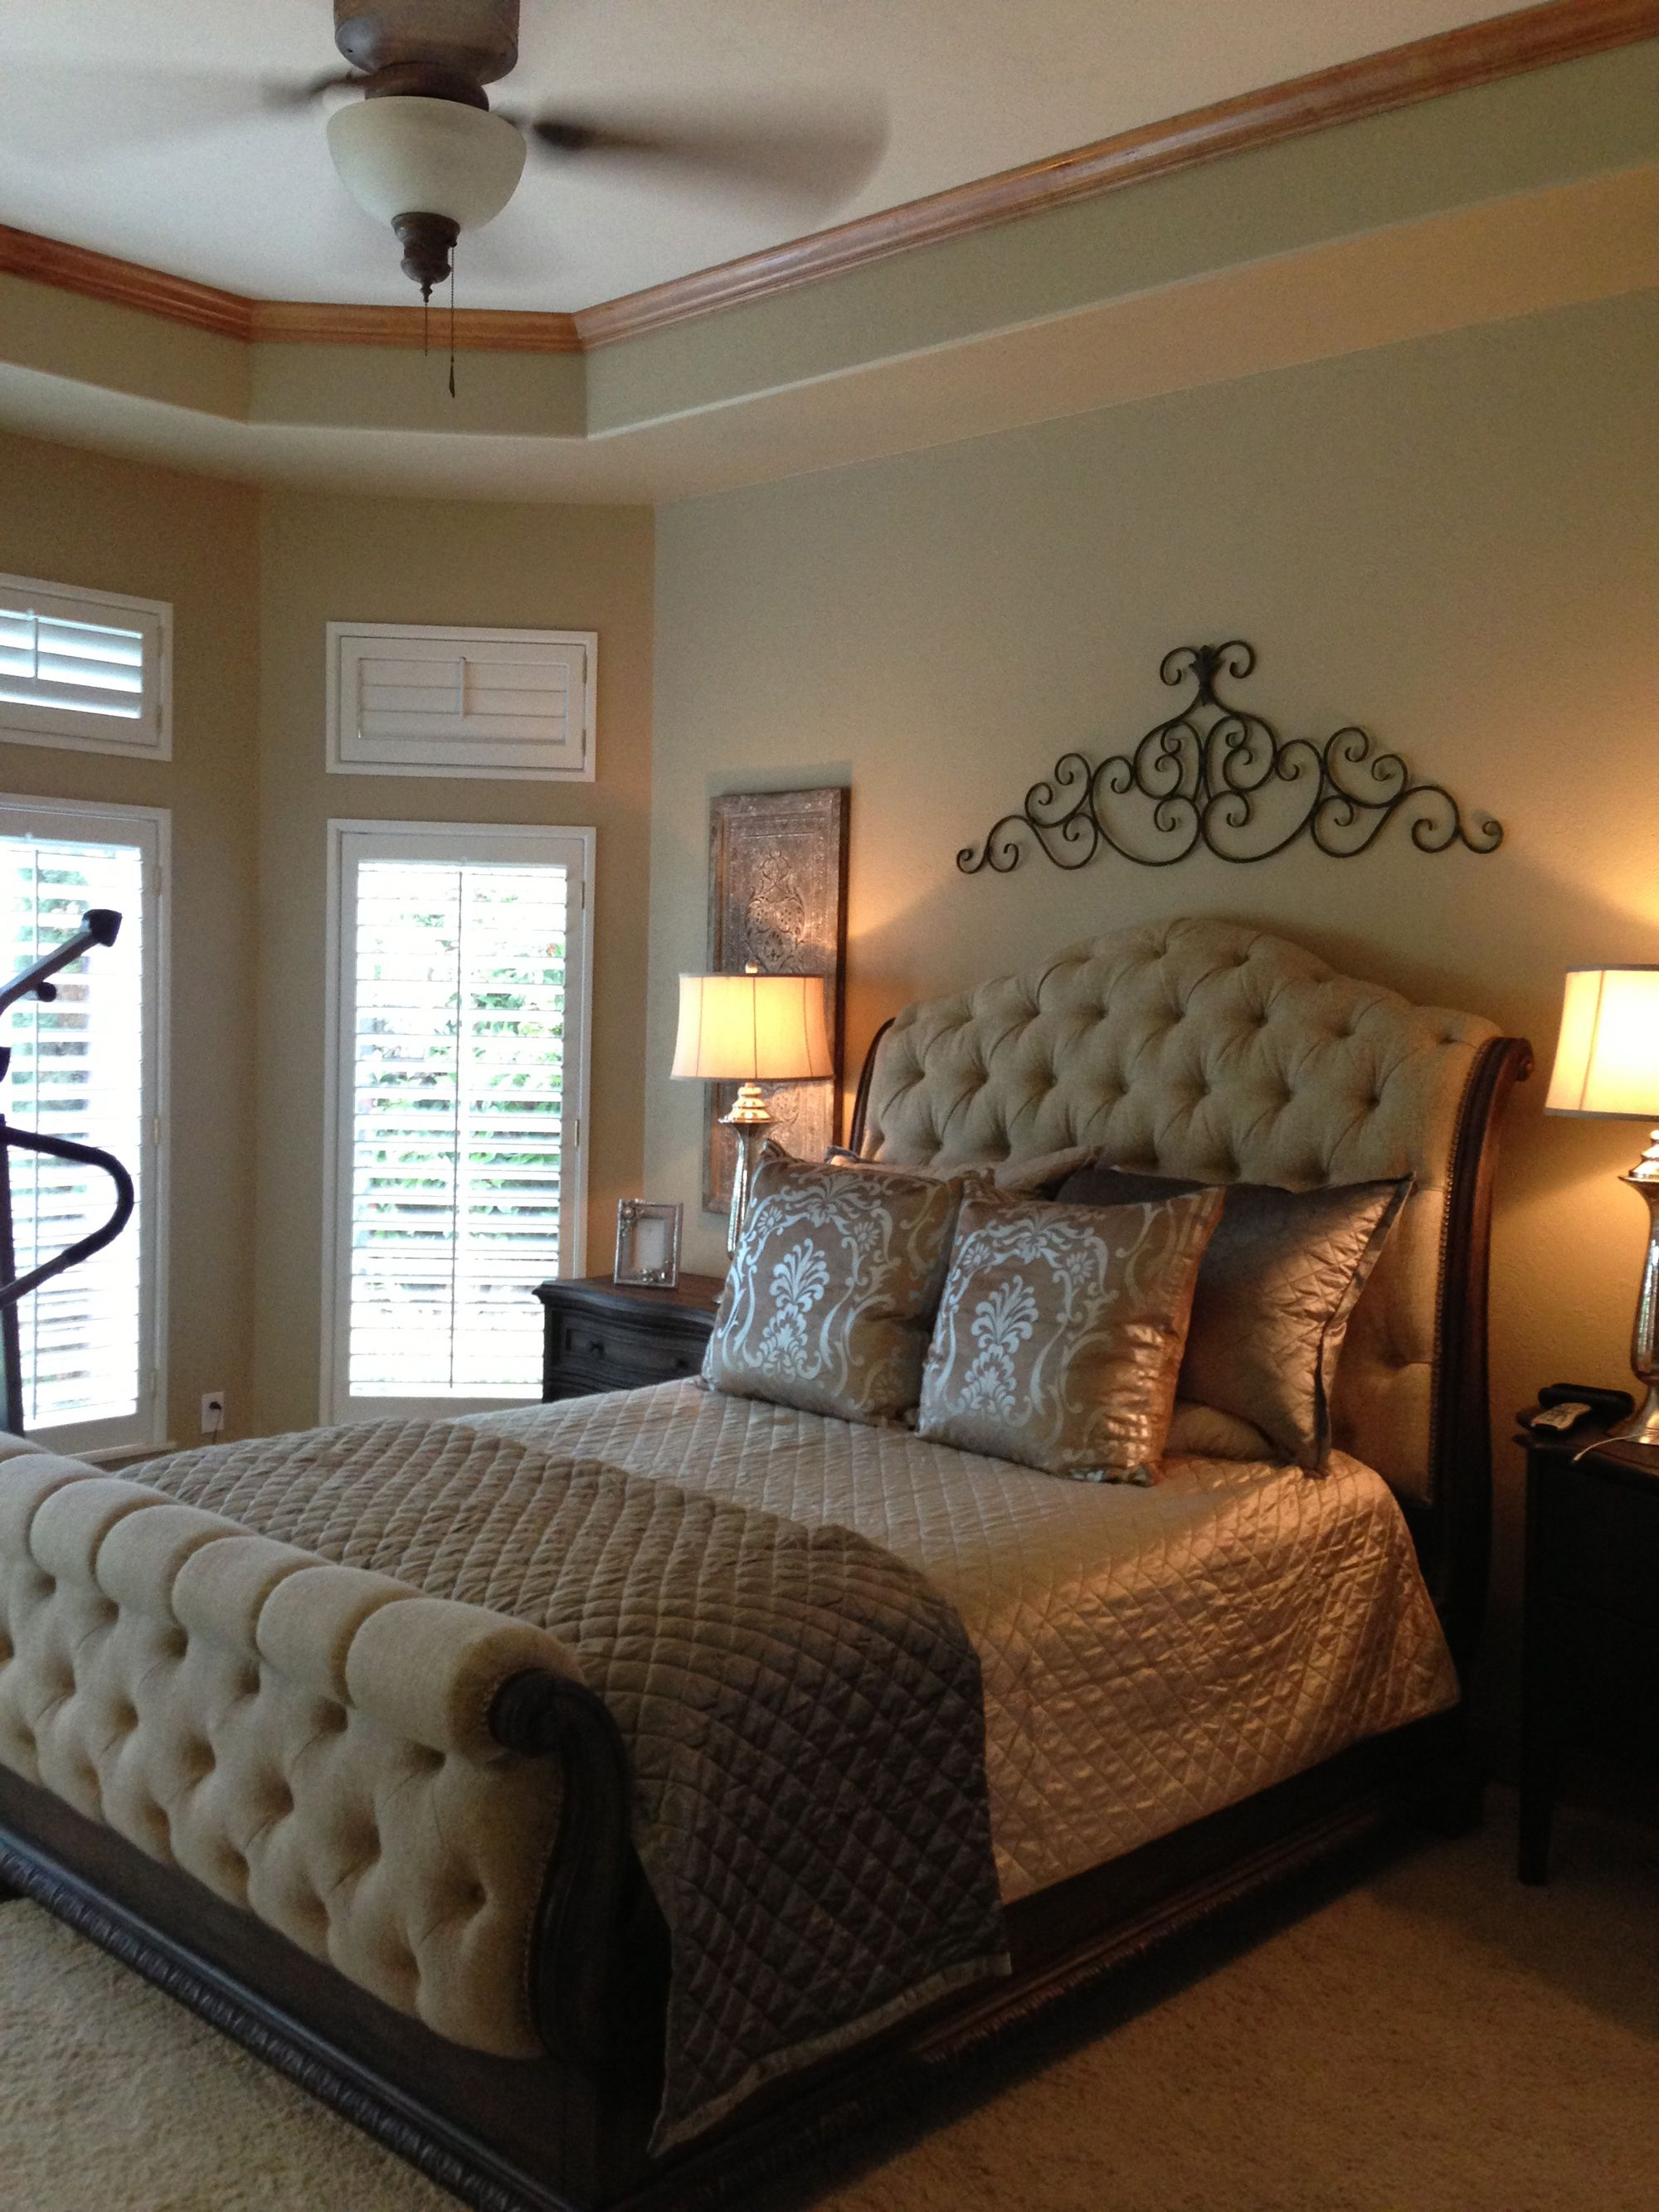 Queen Poster Beds   Poster Beds   Beds   Bedroom Furniture   By Hooker  Furniture Can Get Lower Posts | Luxury Beds | Pinterest | Hooker Furniture,  ...